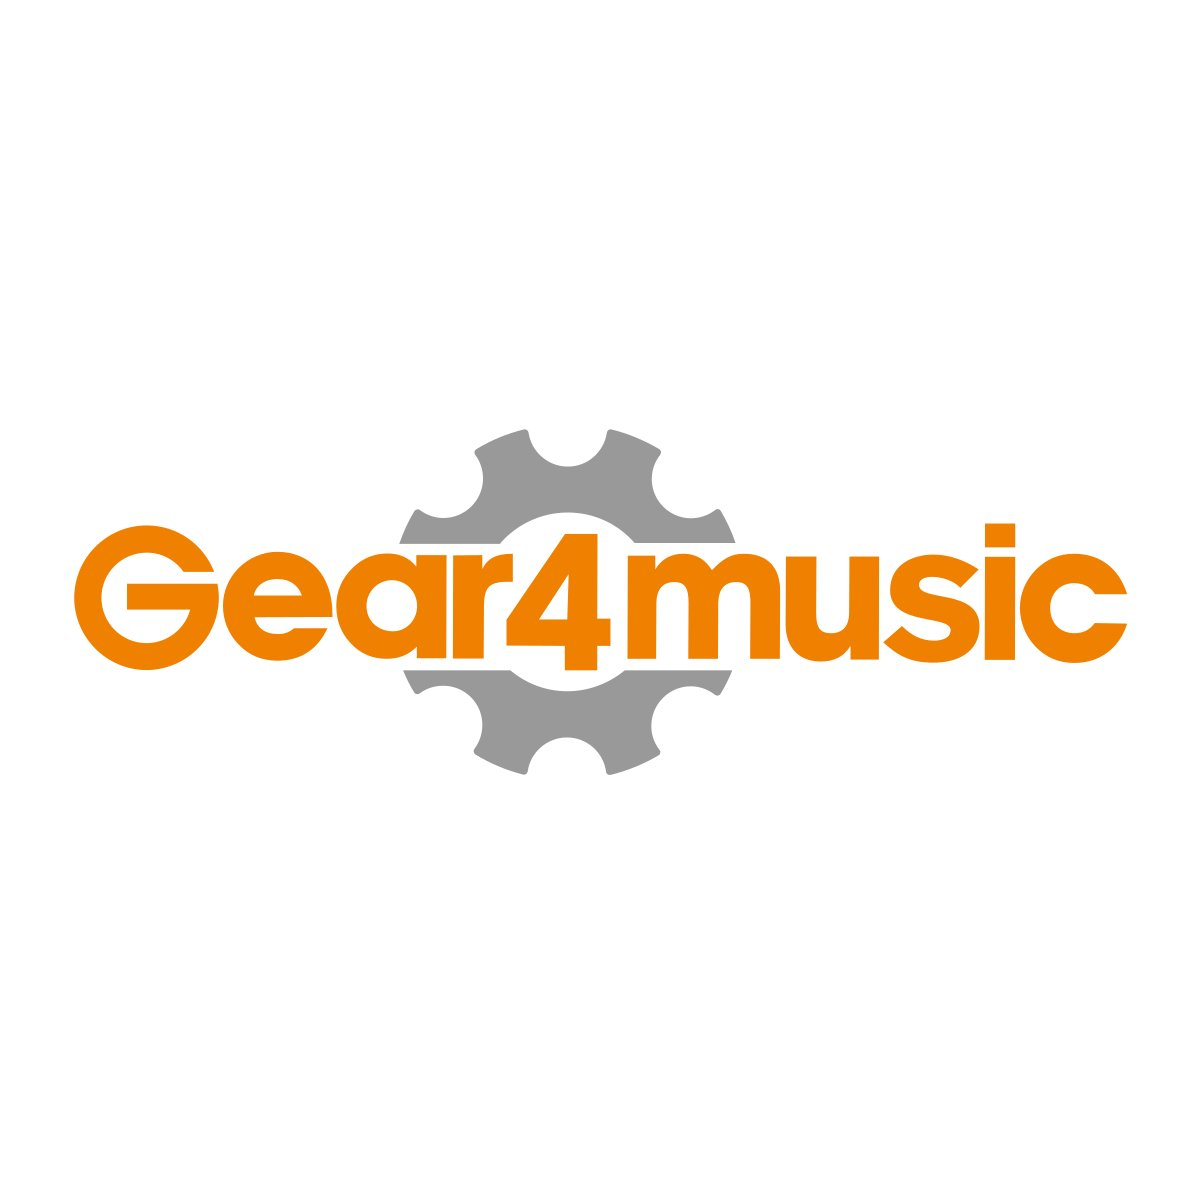 Lutharpa av Gear4Music